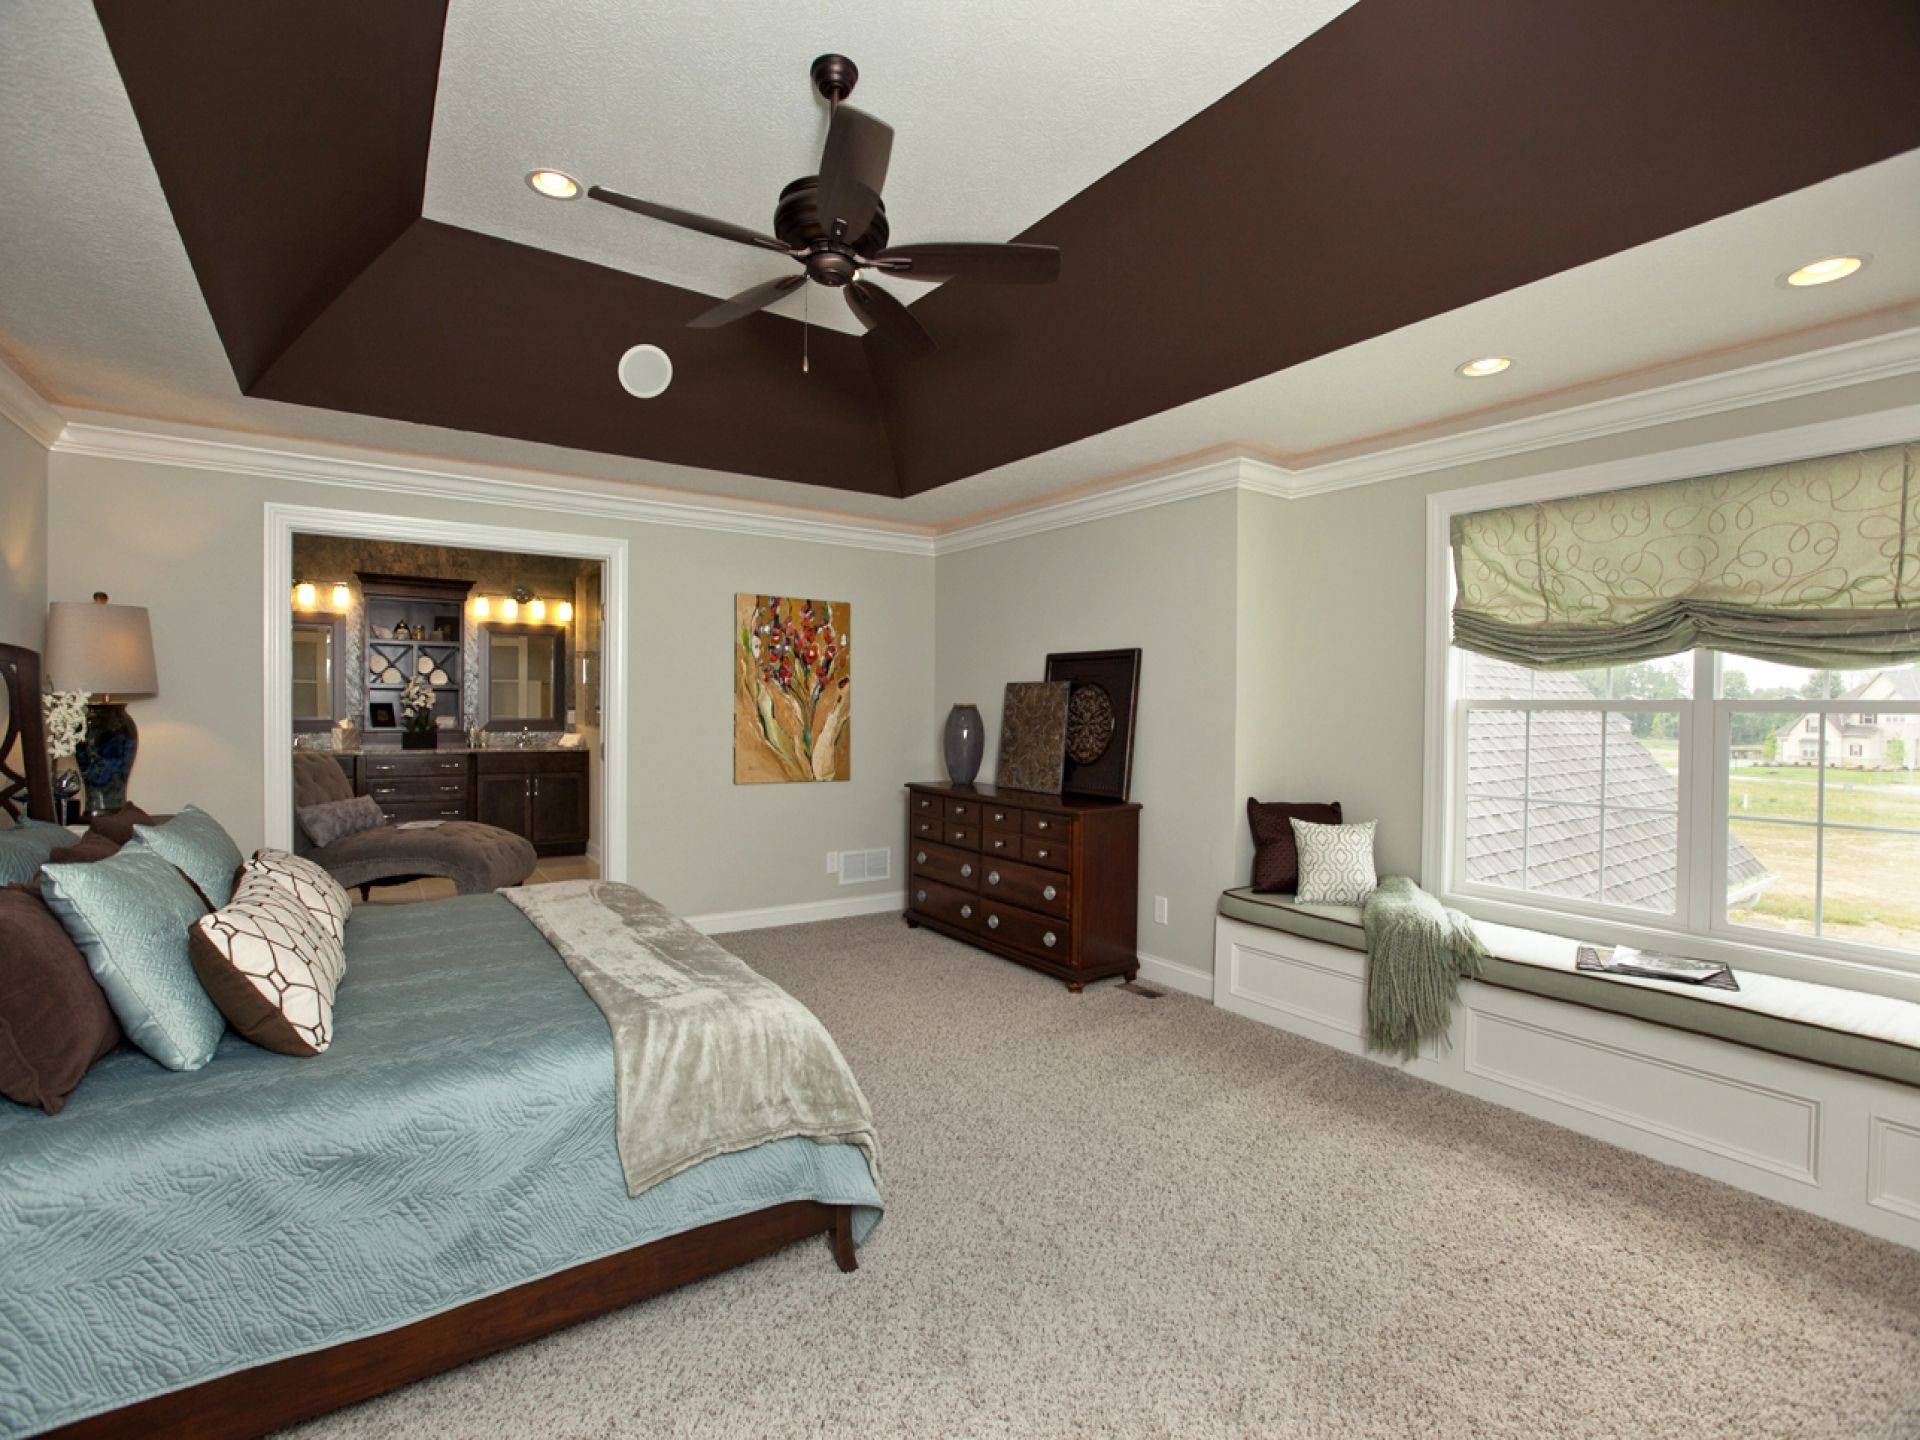 Fresh Lighting Ideas for Pitched Ceilings Best Of Deep Angled Tray Ceiling In Master Bedroom 3 Pillar Homes